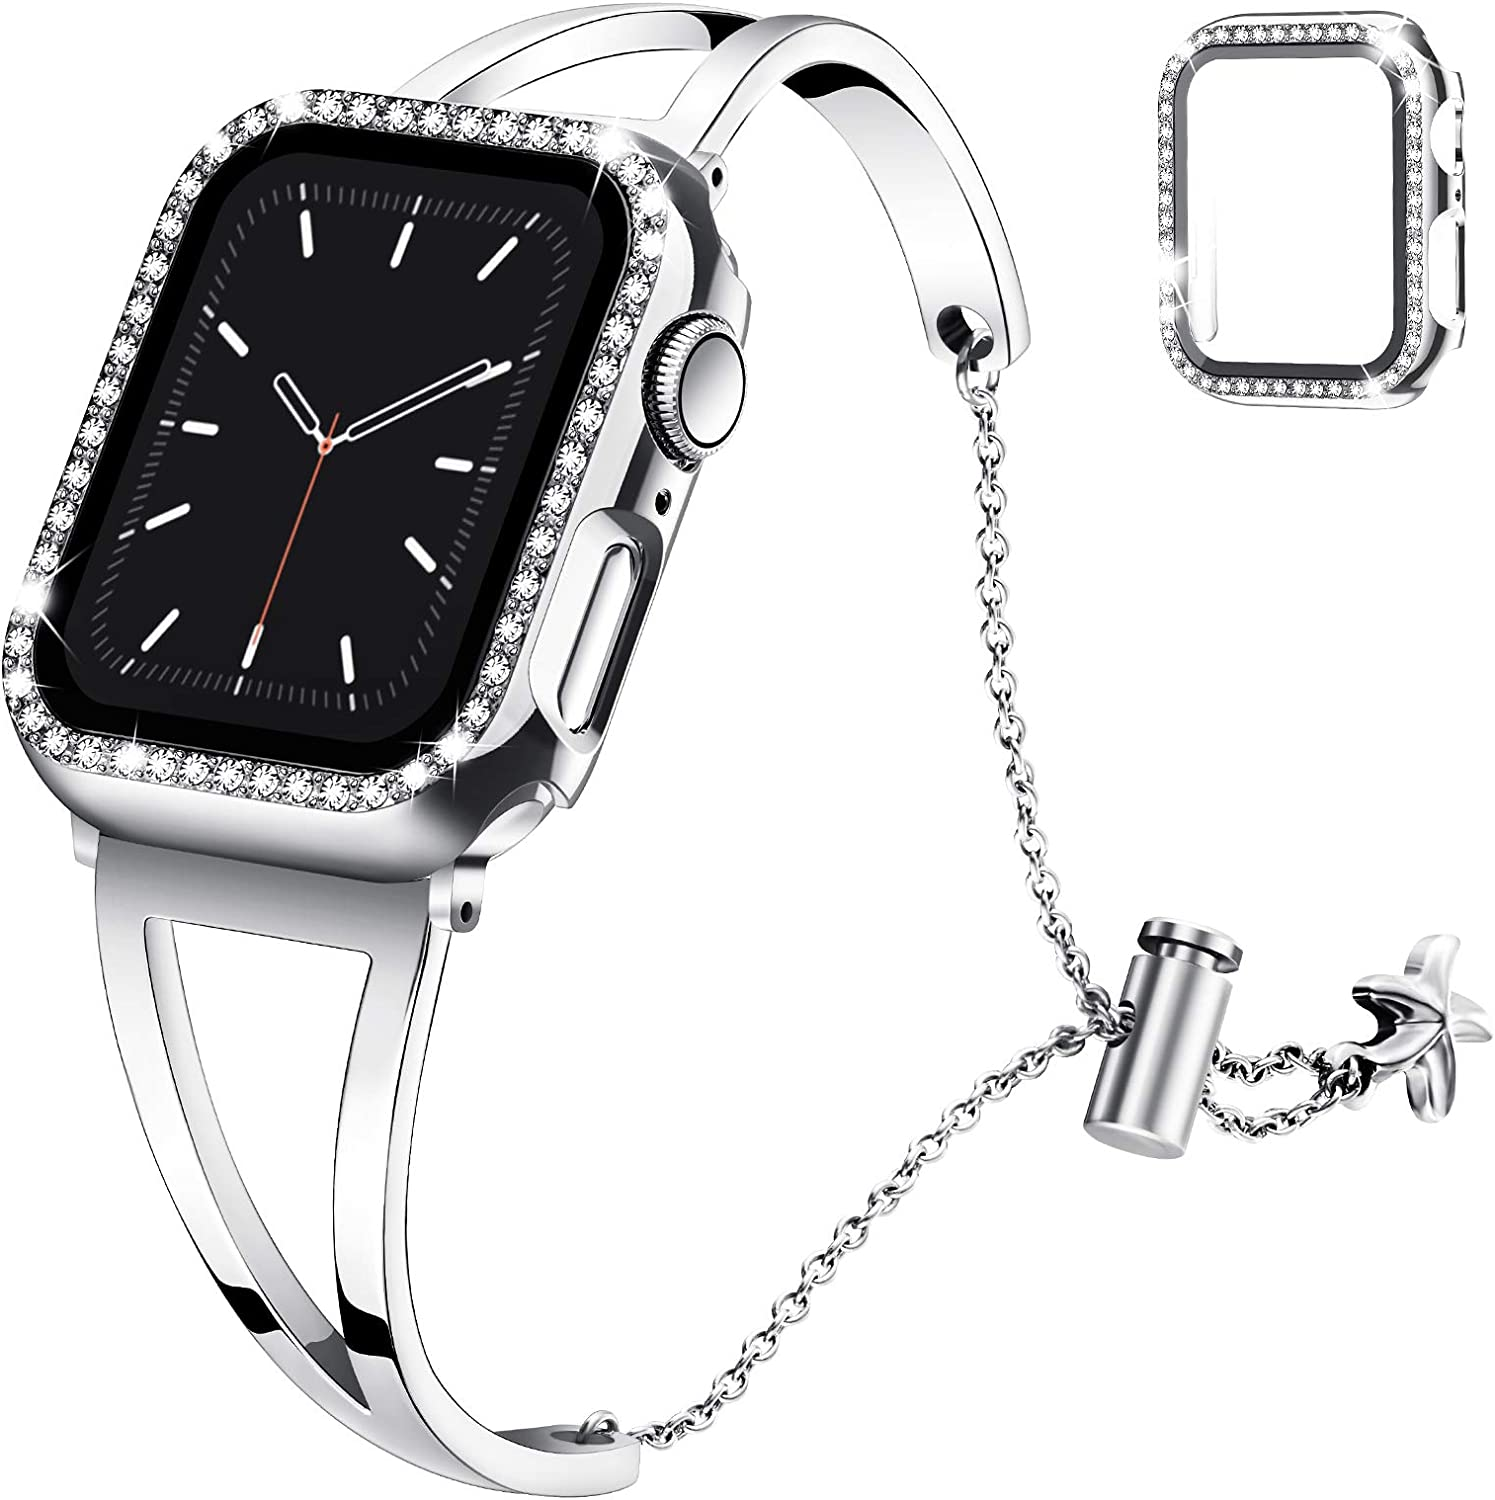 Recoppa Compatible with Apple Watch Band 38mm Series 3 2 1, Jewelry Bracelet Bangle Wristband and Bling Case with Tempered Glass Screen Protector for iWatch(Silver/Silver, 38mm)